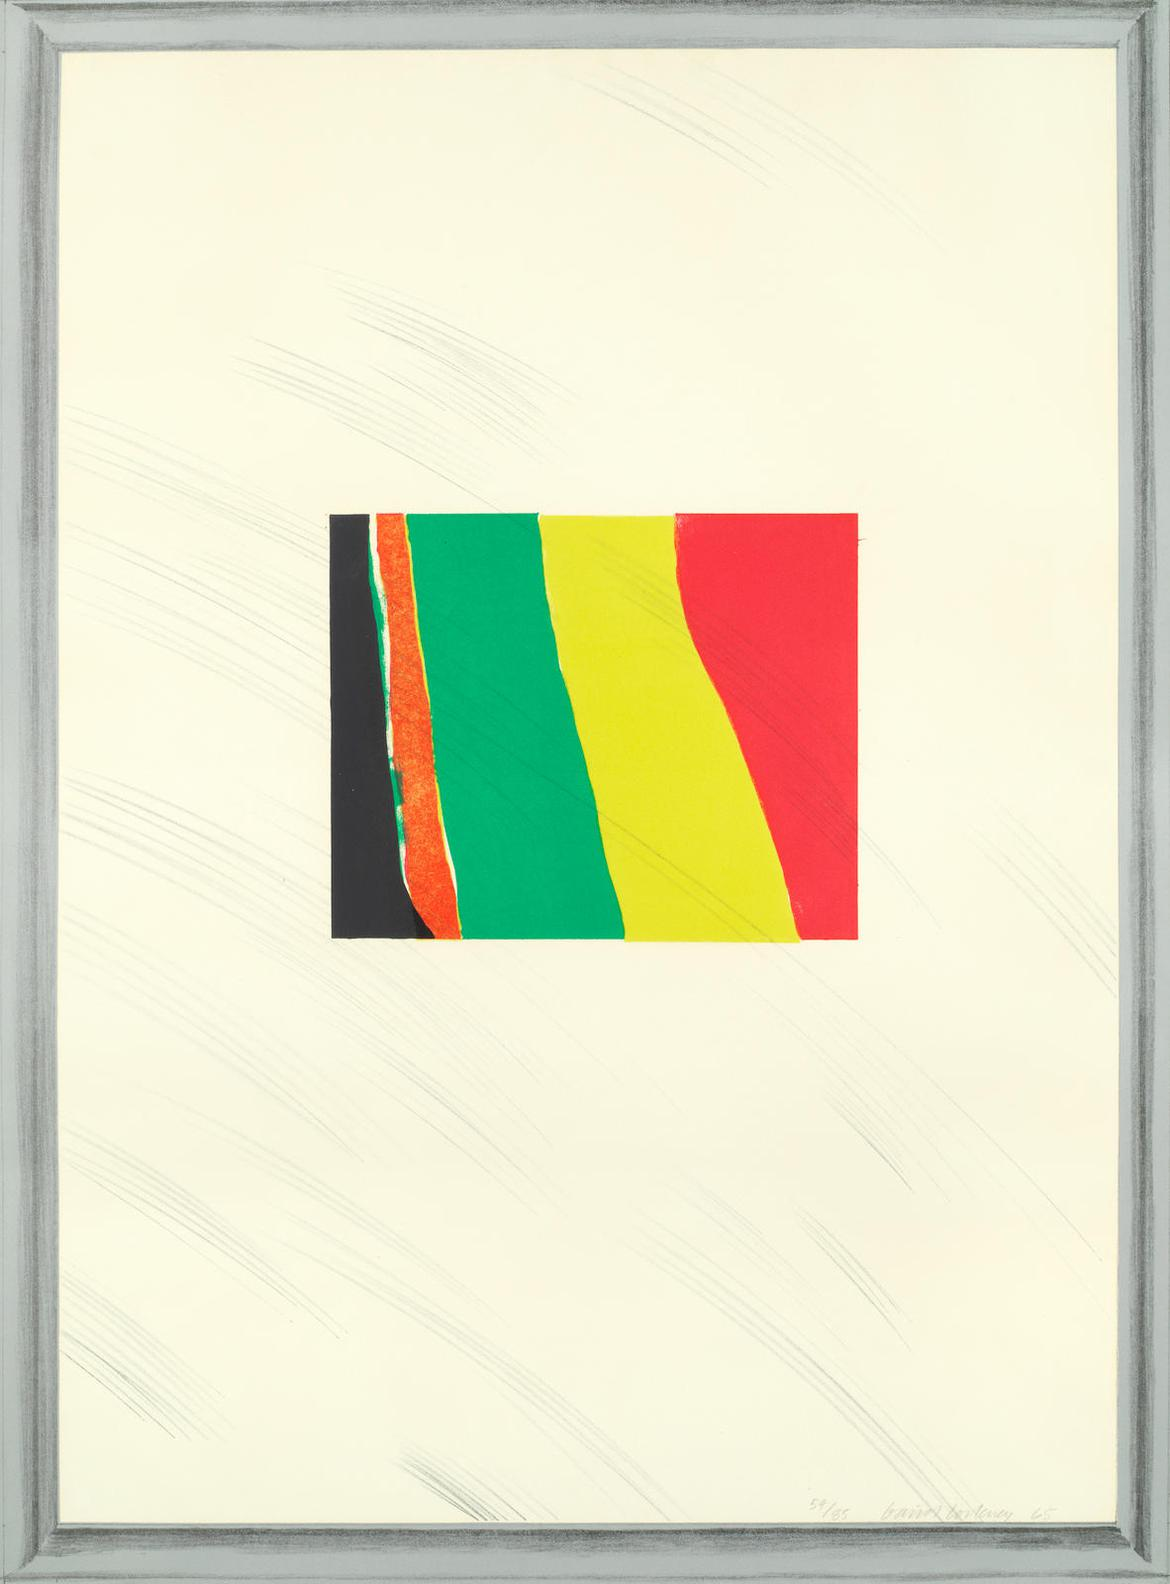 David Hockney-Picture Of A Pointless Abstraction Framed Under Glass, From A Hollywood Collection 6 (Mca Tokyo 46)-1965